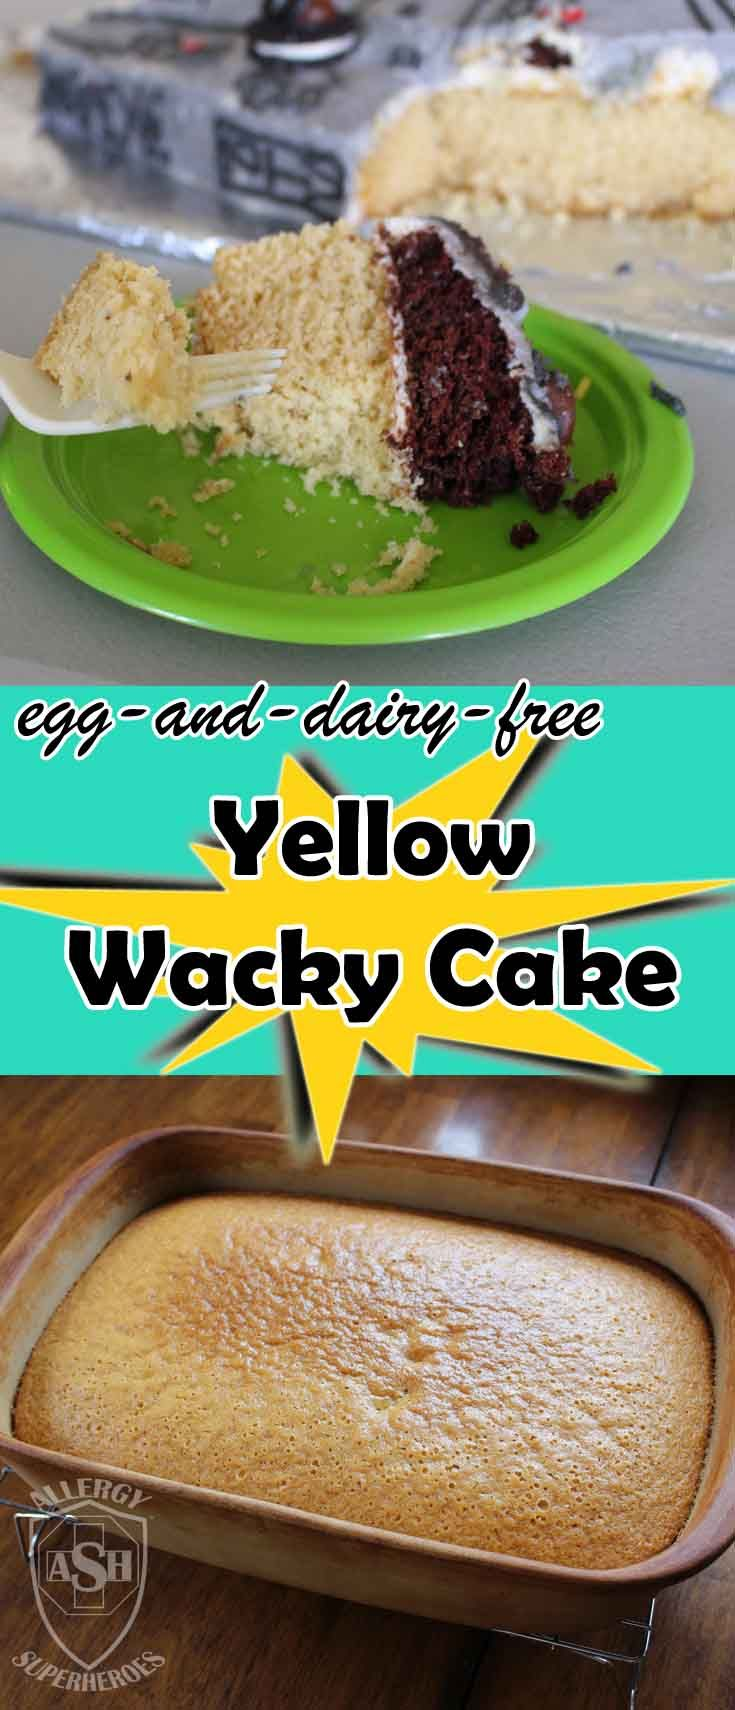 Yellow Wacky Cake - Delicious! - egg free, dairy free, vegan, free of most major allergens